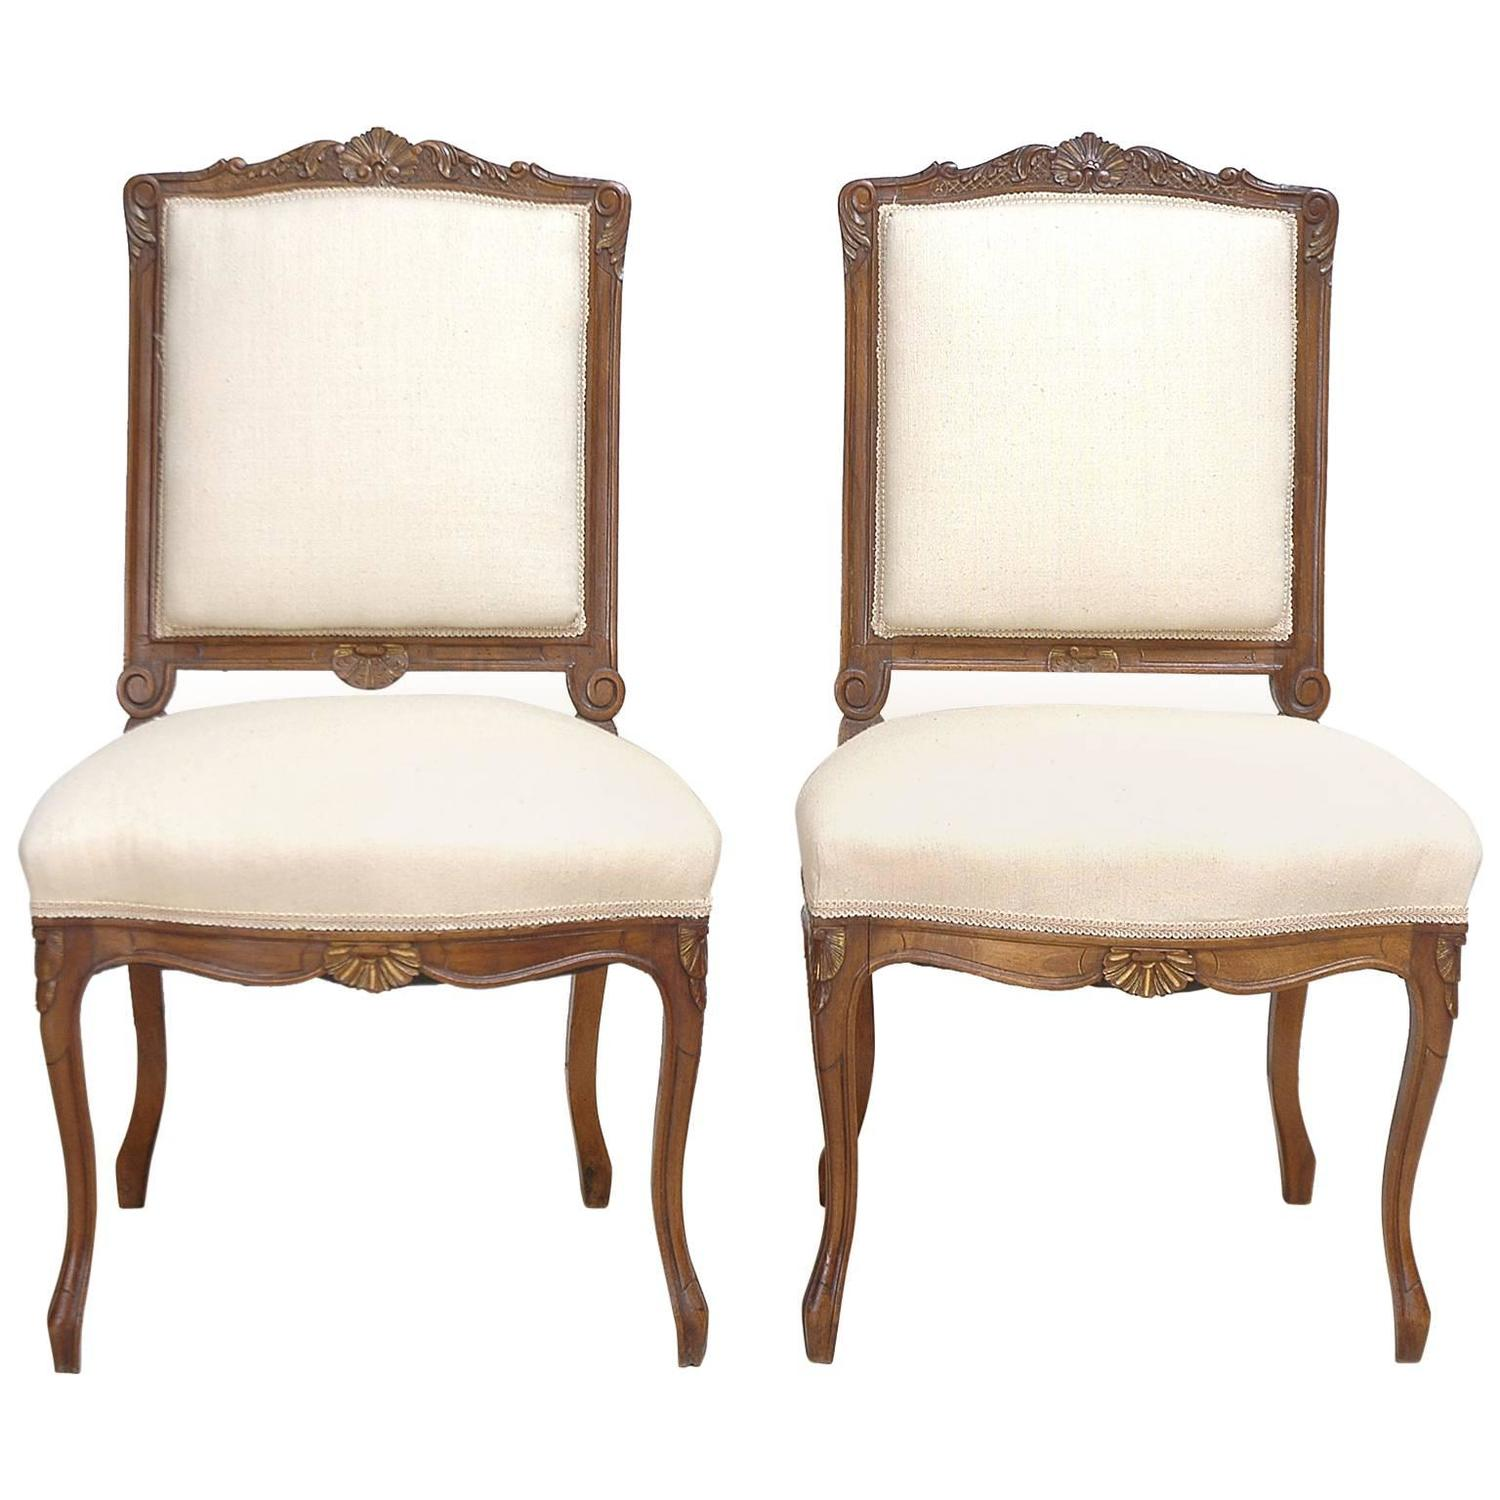 Pair Of 19th Century French Regency Style Chairs Regency Style Furniture F84